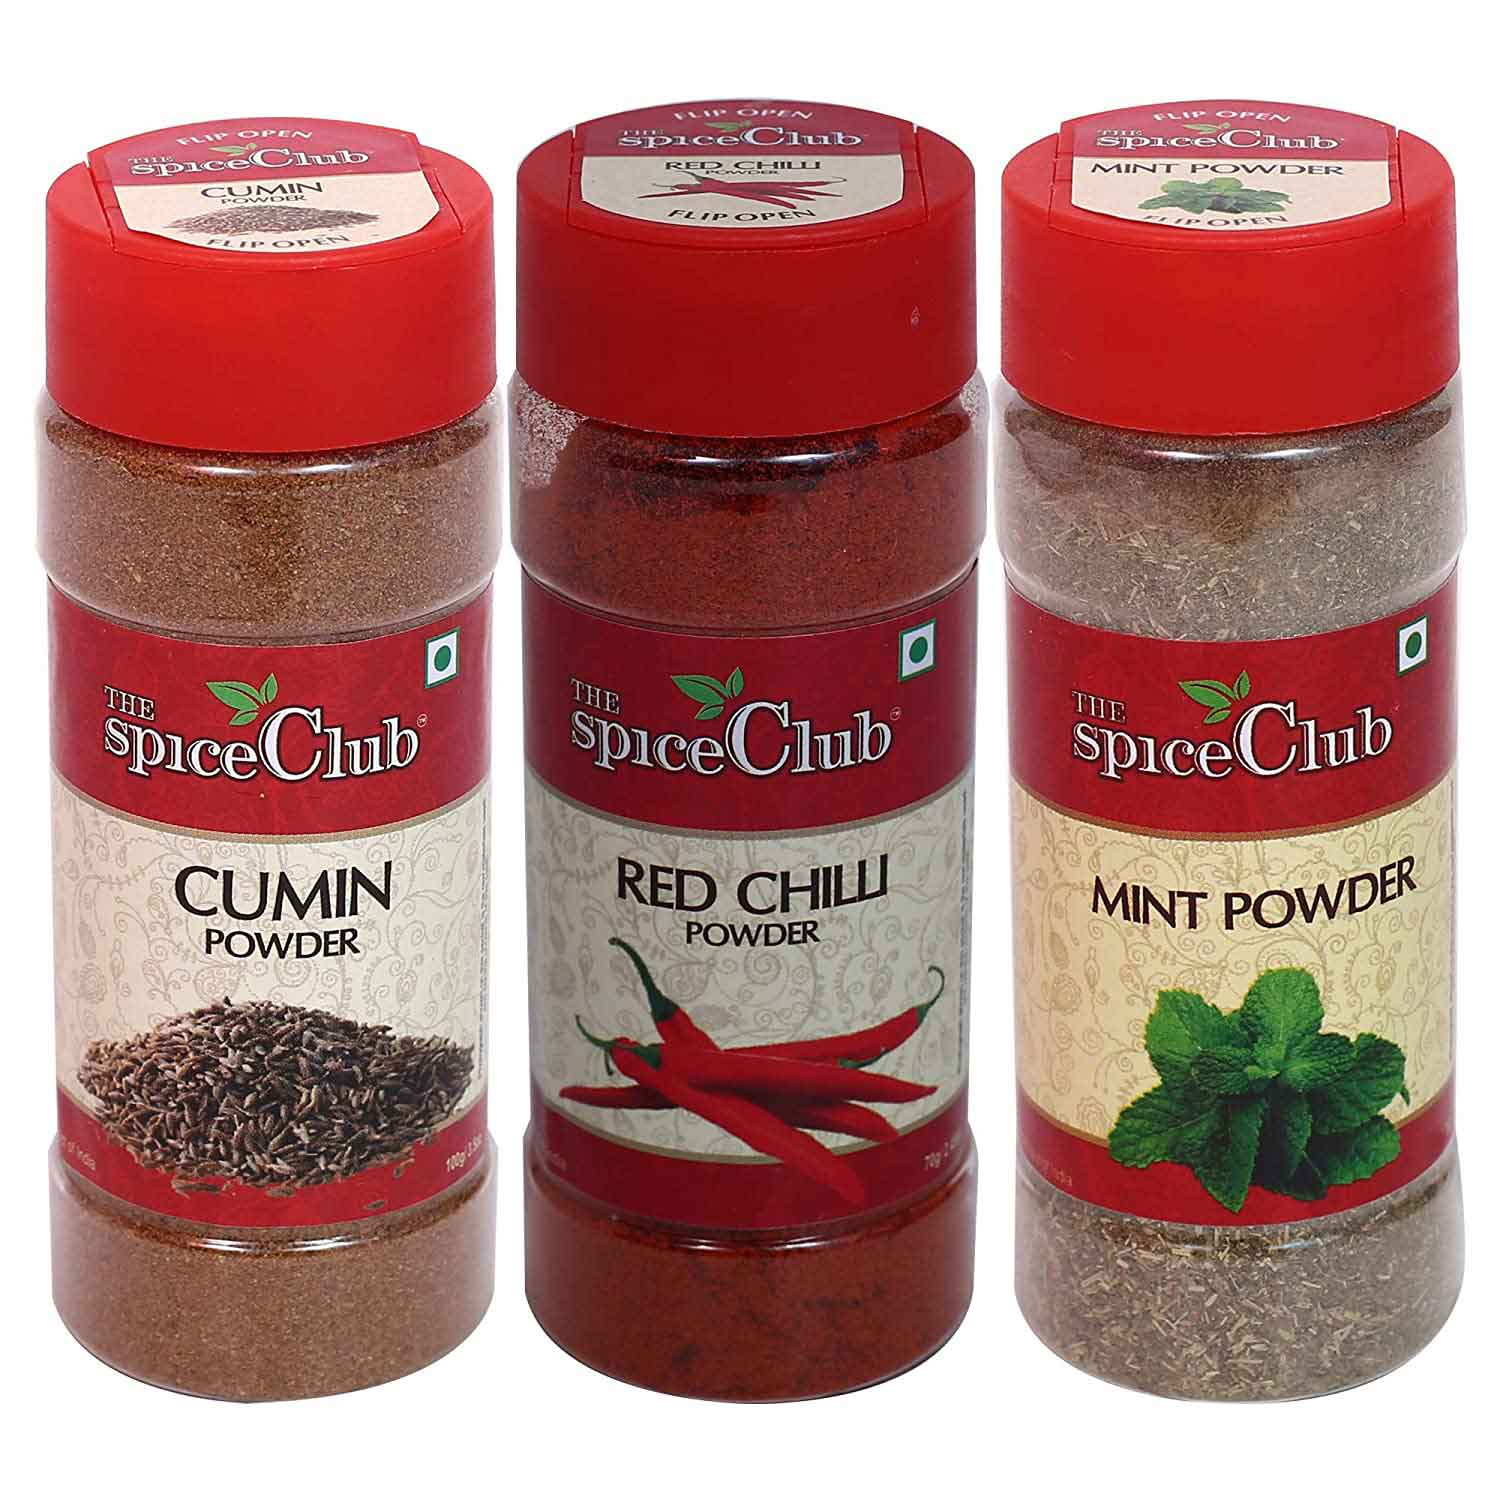 Cumin Powder 70g + Red Chilli Powder 70g + Mint Powder 50g